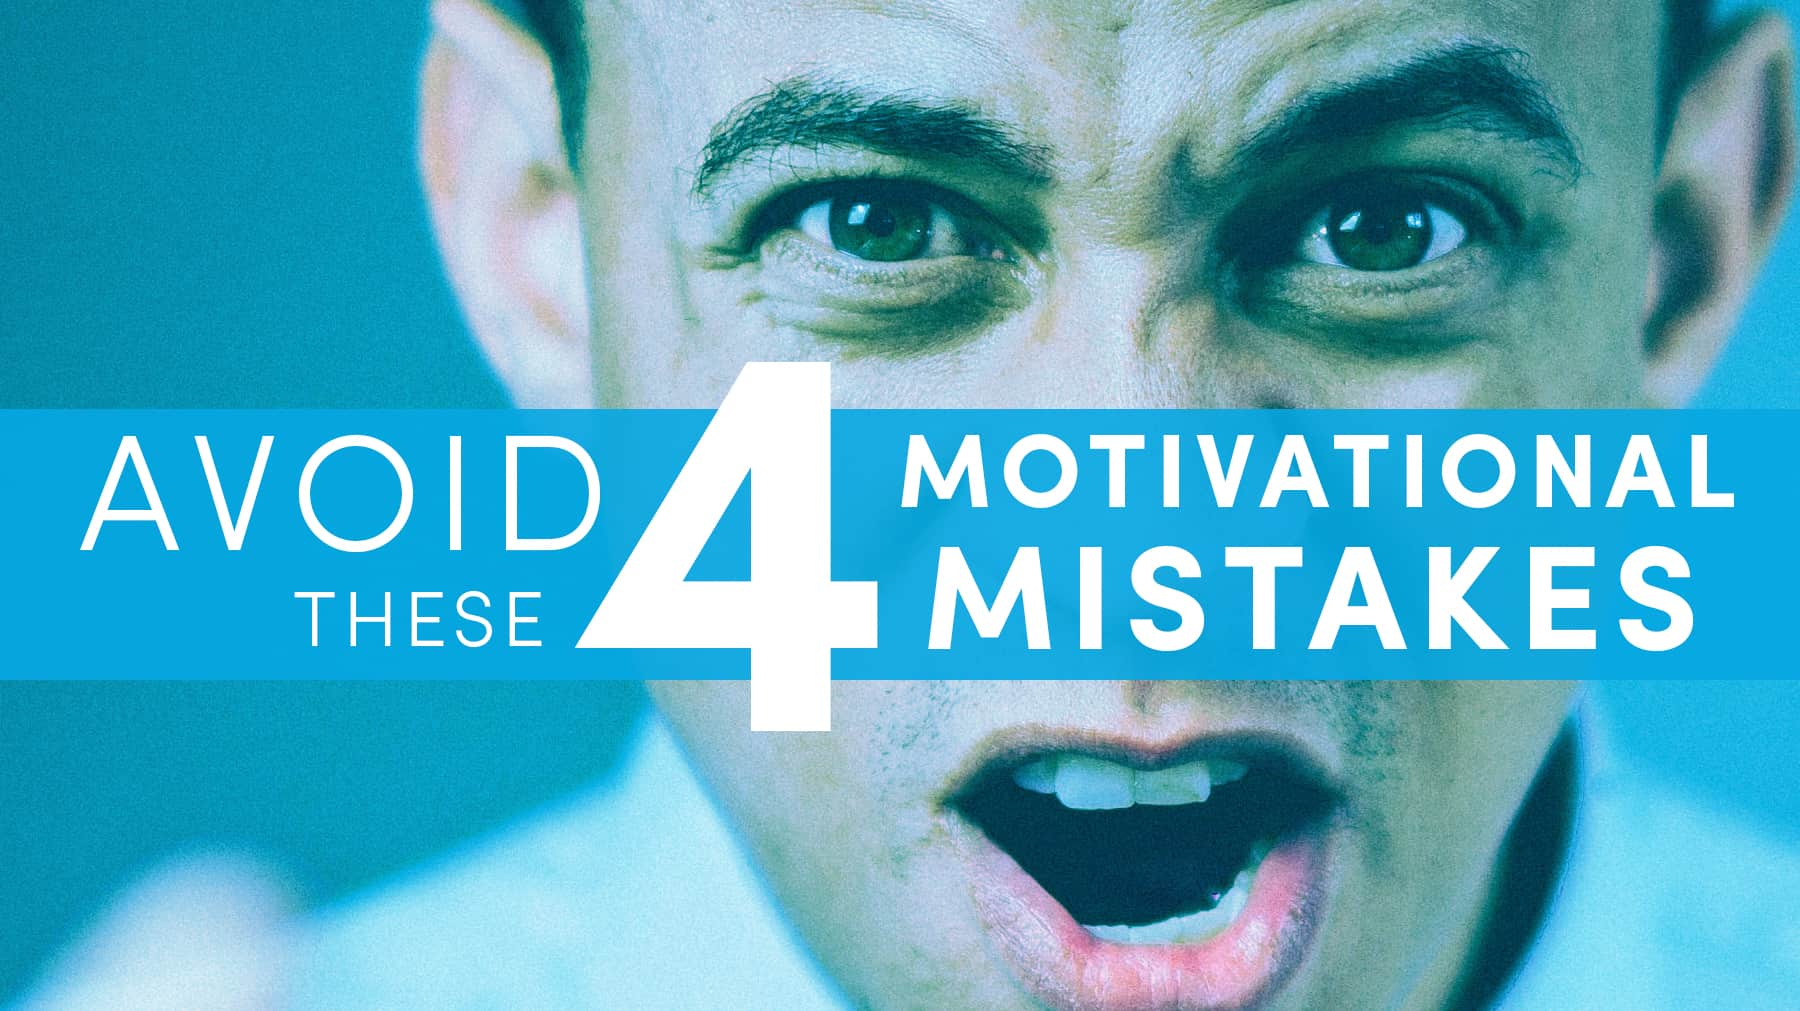 Avoid these 4 motivational mistakes